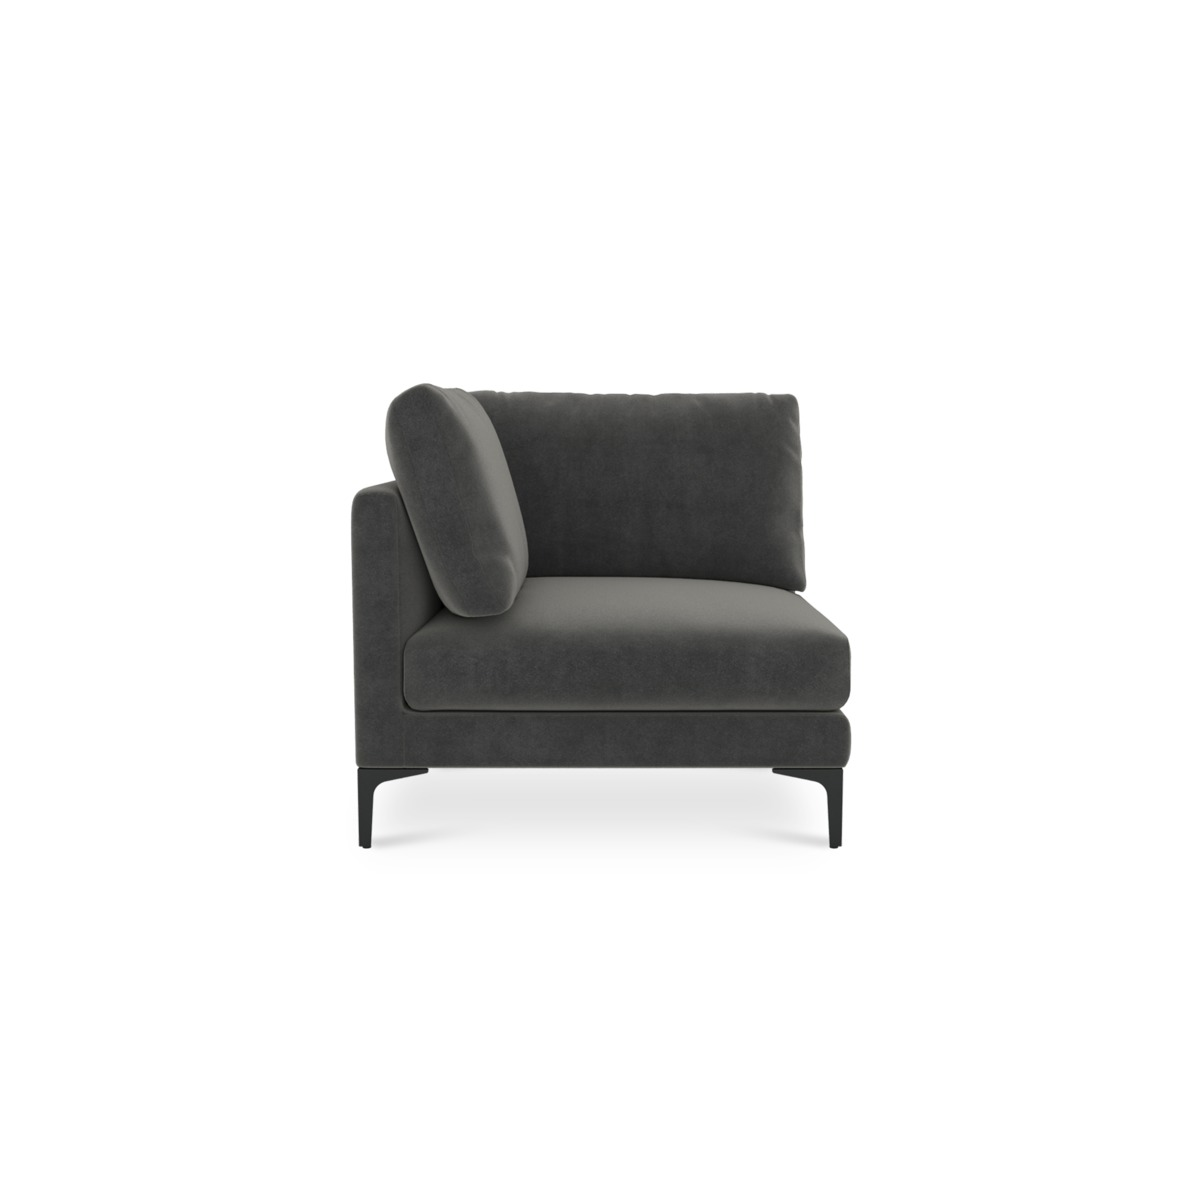 Adams Corner Sofa, Moon Grey (Black Leg)